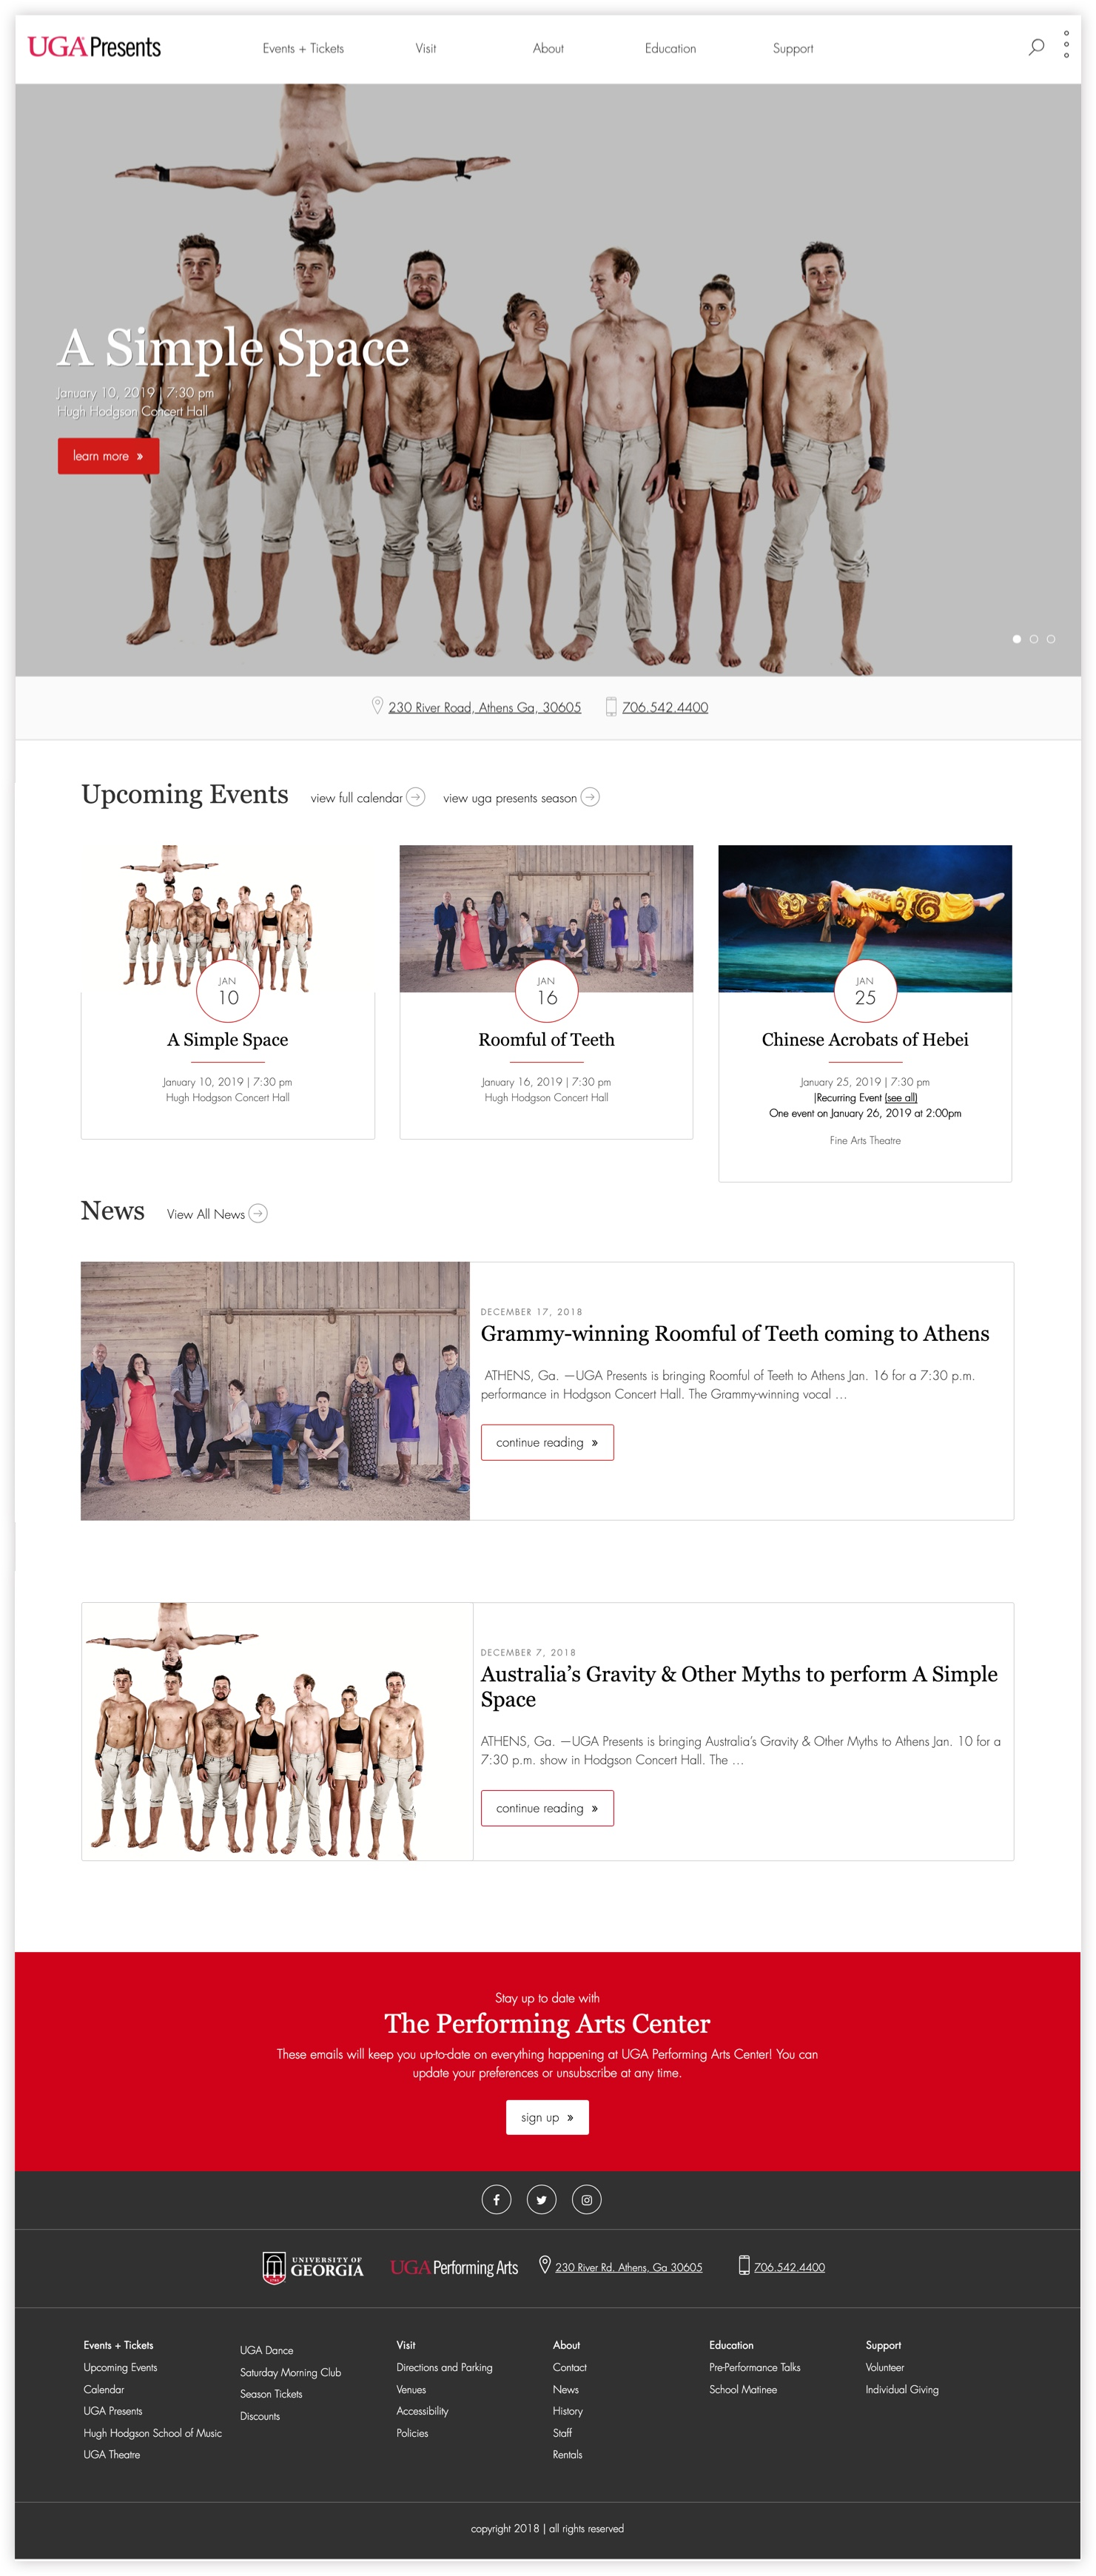 UGA Performing Arts Center home page